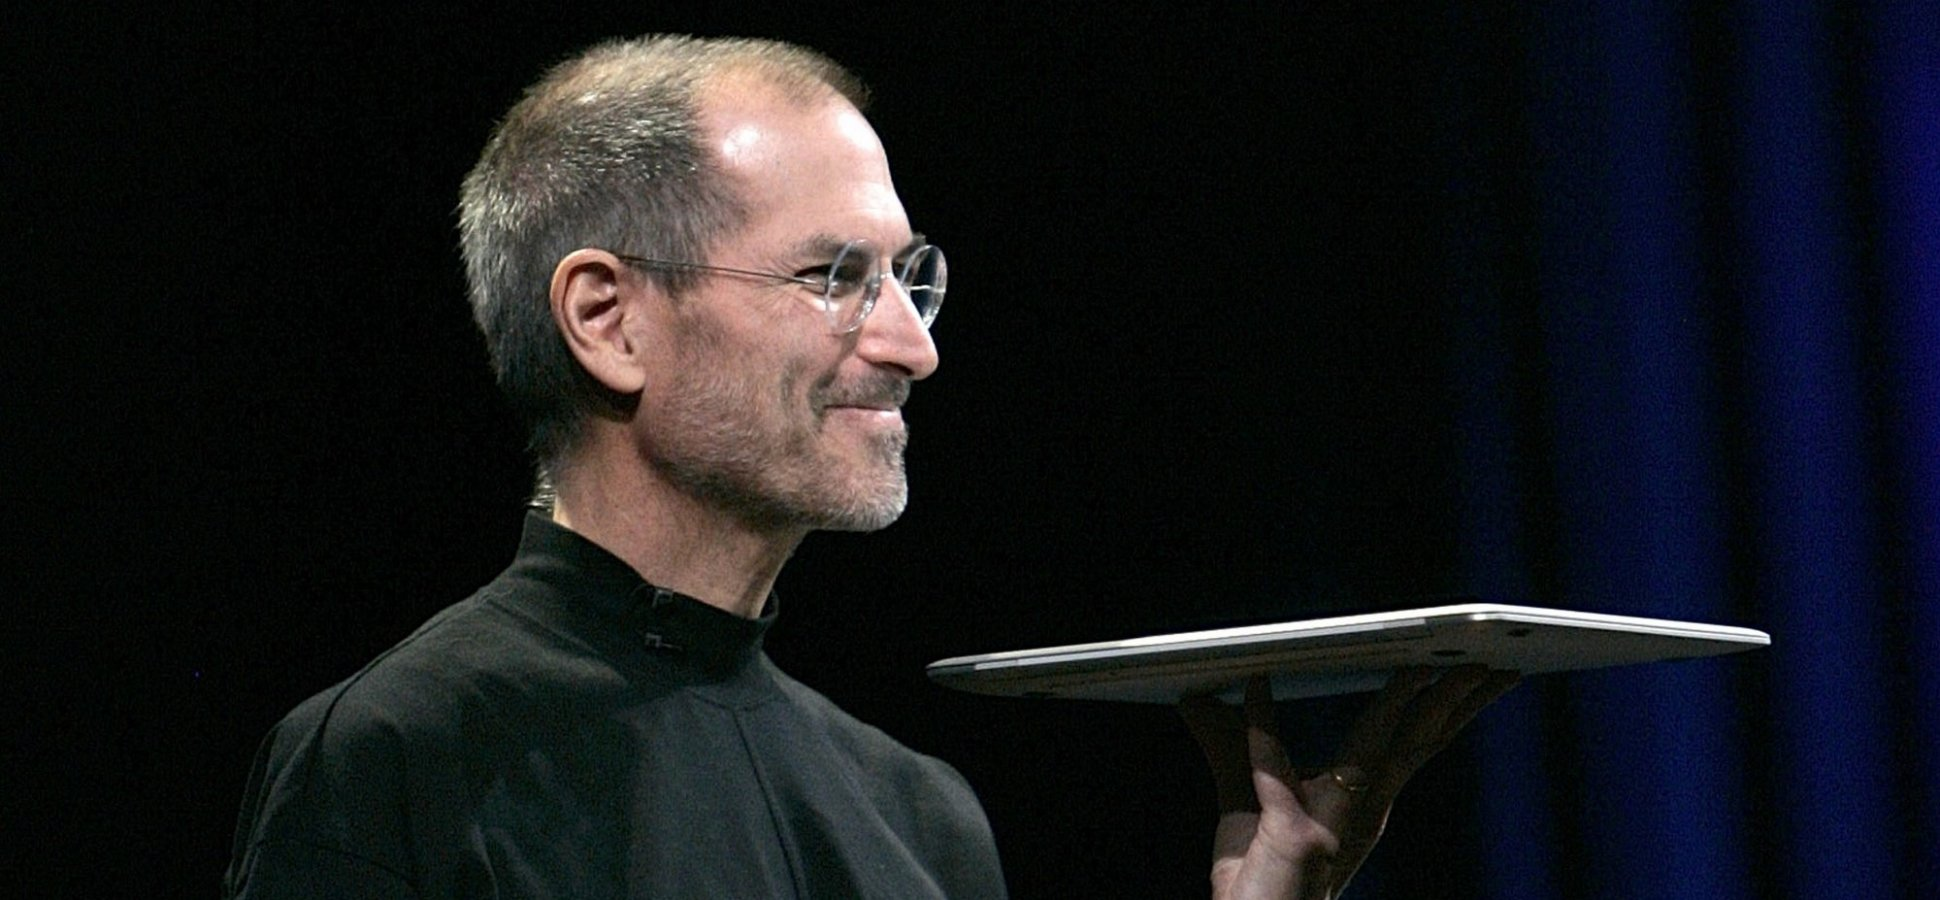 Steve Jobs Said This 1 Simple Habit Separates Successful People From Everyone Else (And Warren Buffett Agrees)